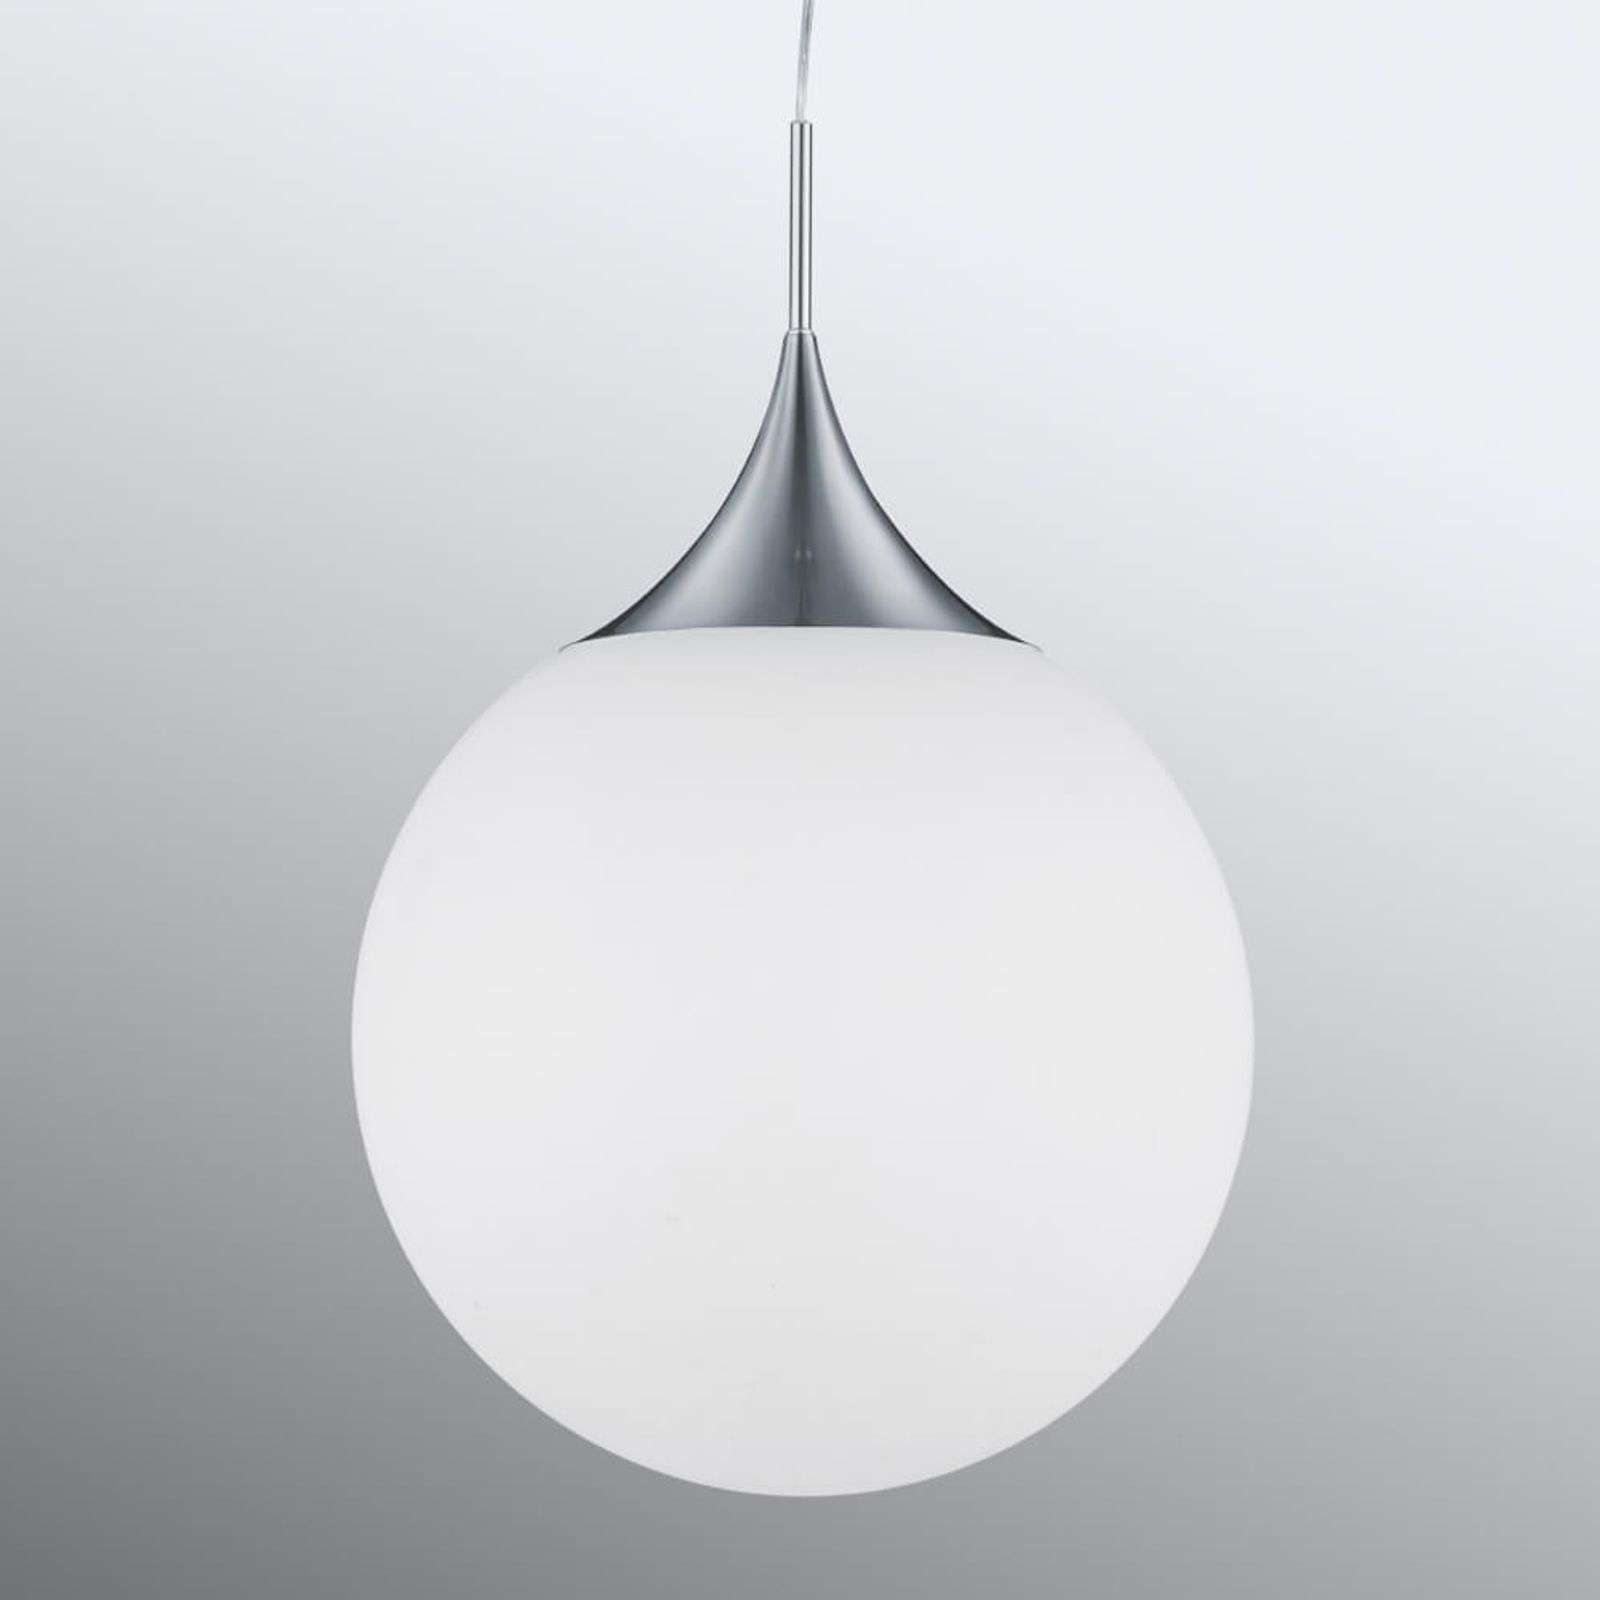 Suspension en verre intemporelle Midas, en blanc